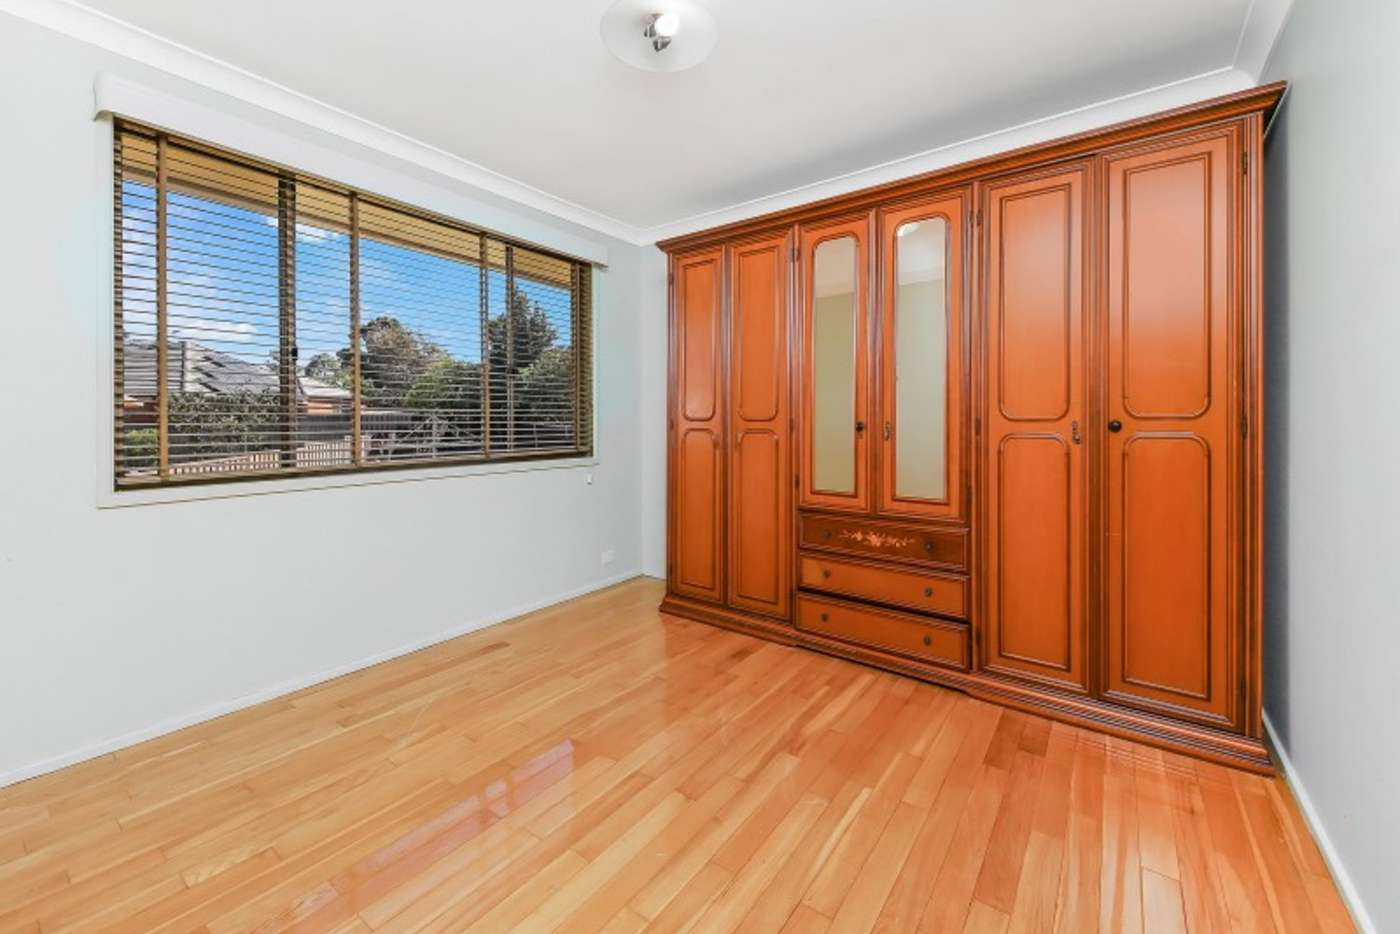 Sixth view of Homely house listing, 13 Kiev Street, Merrylands NSW 2160